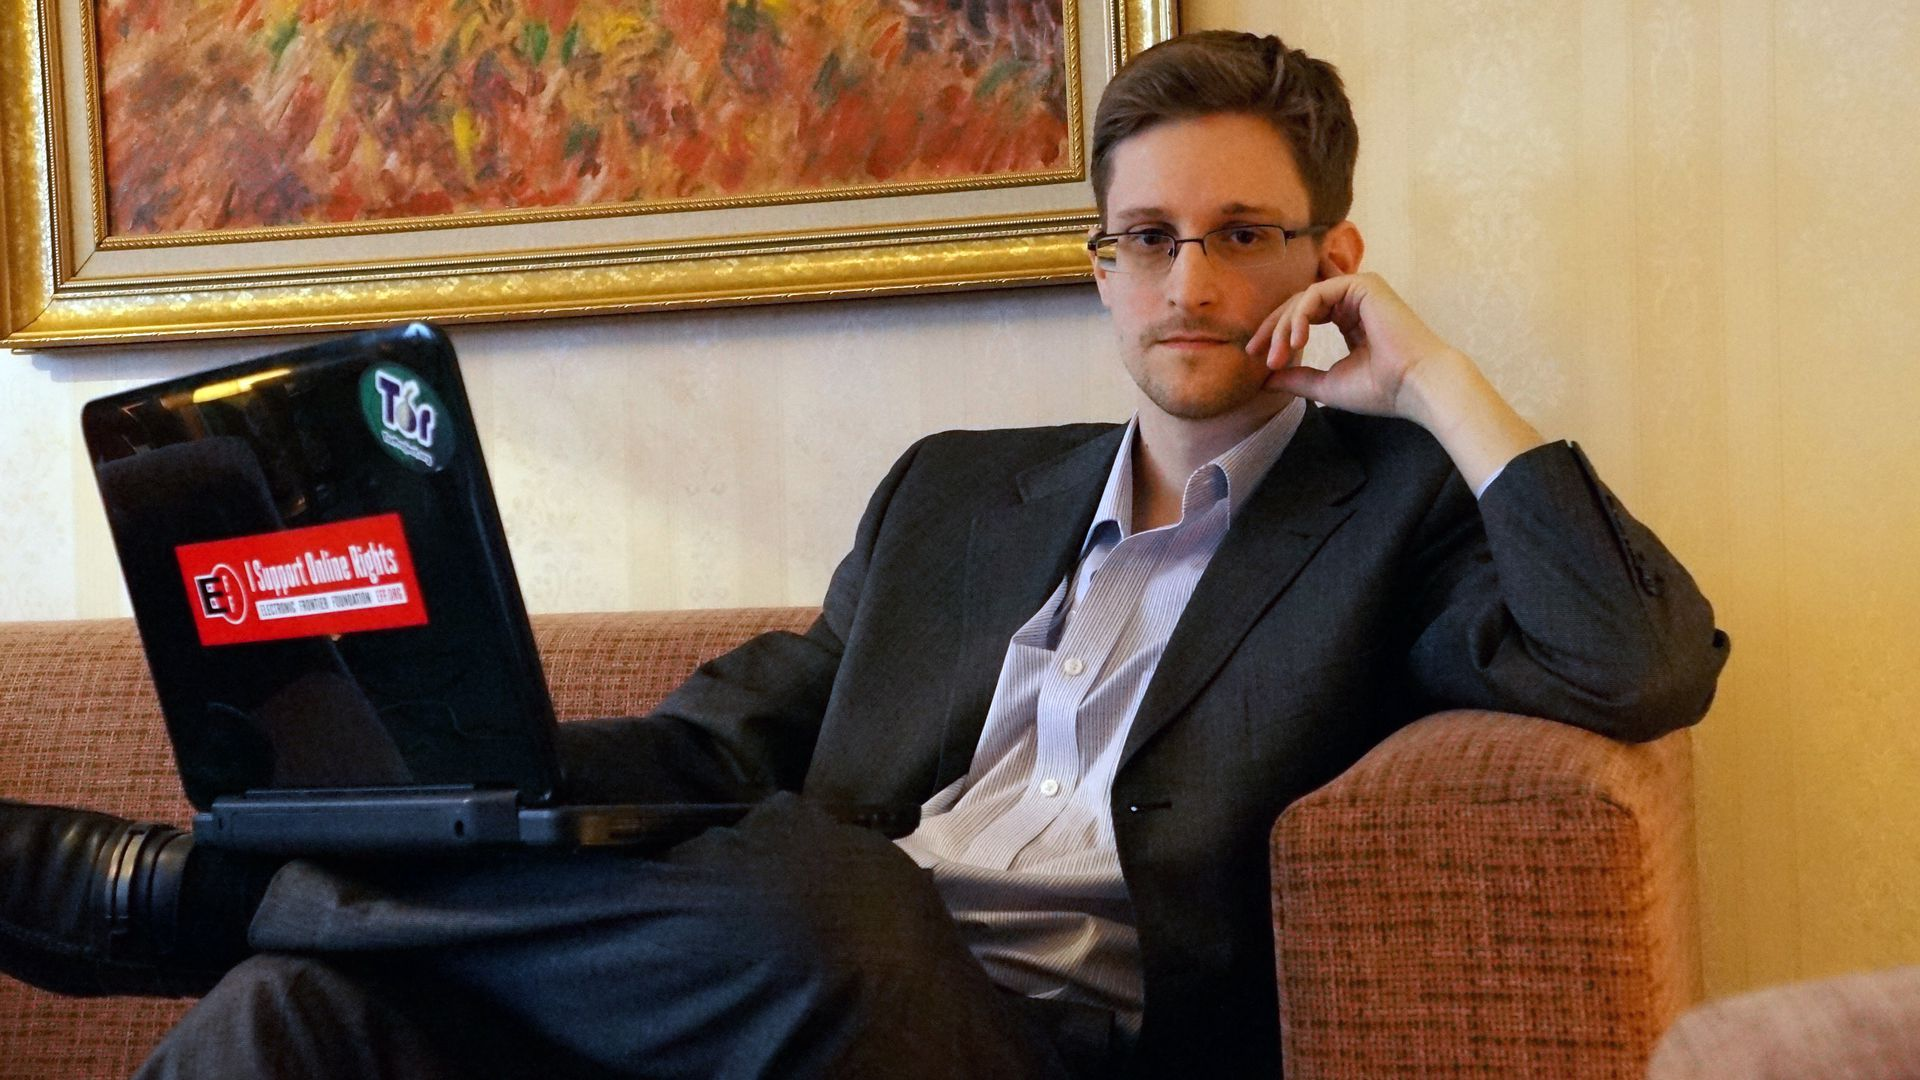 Edward Snowden posing for the camera.